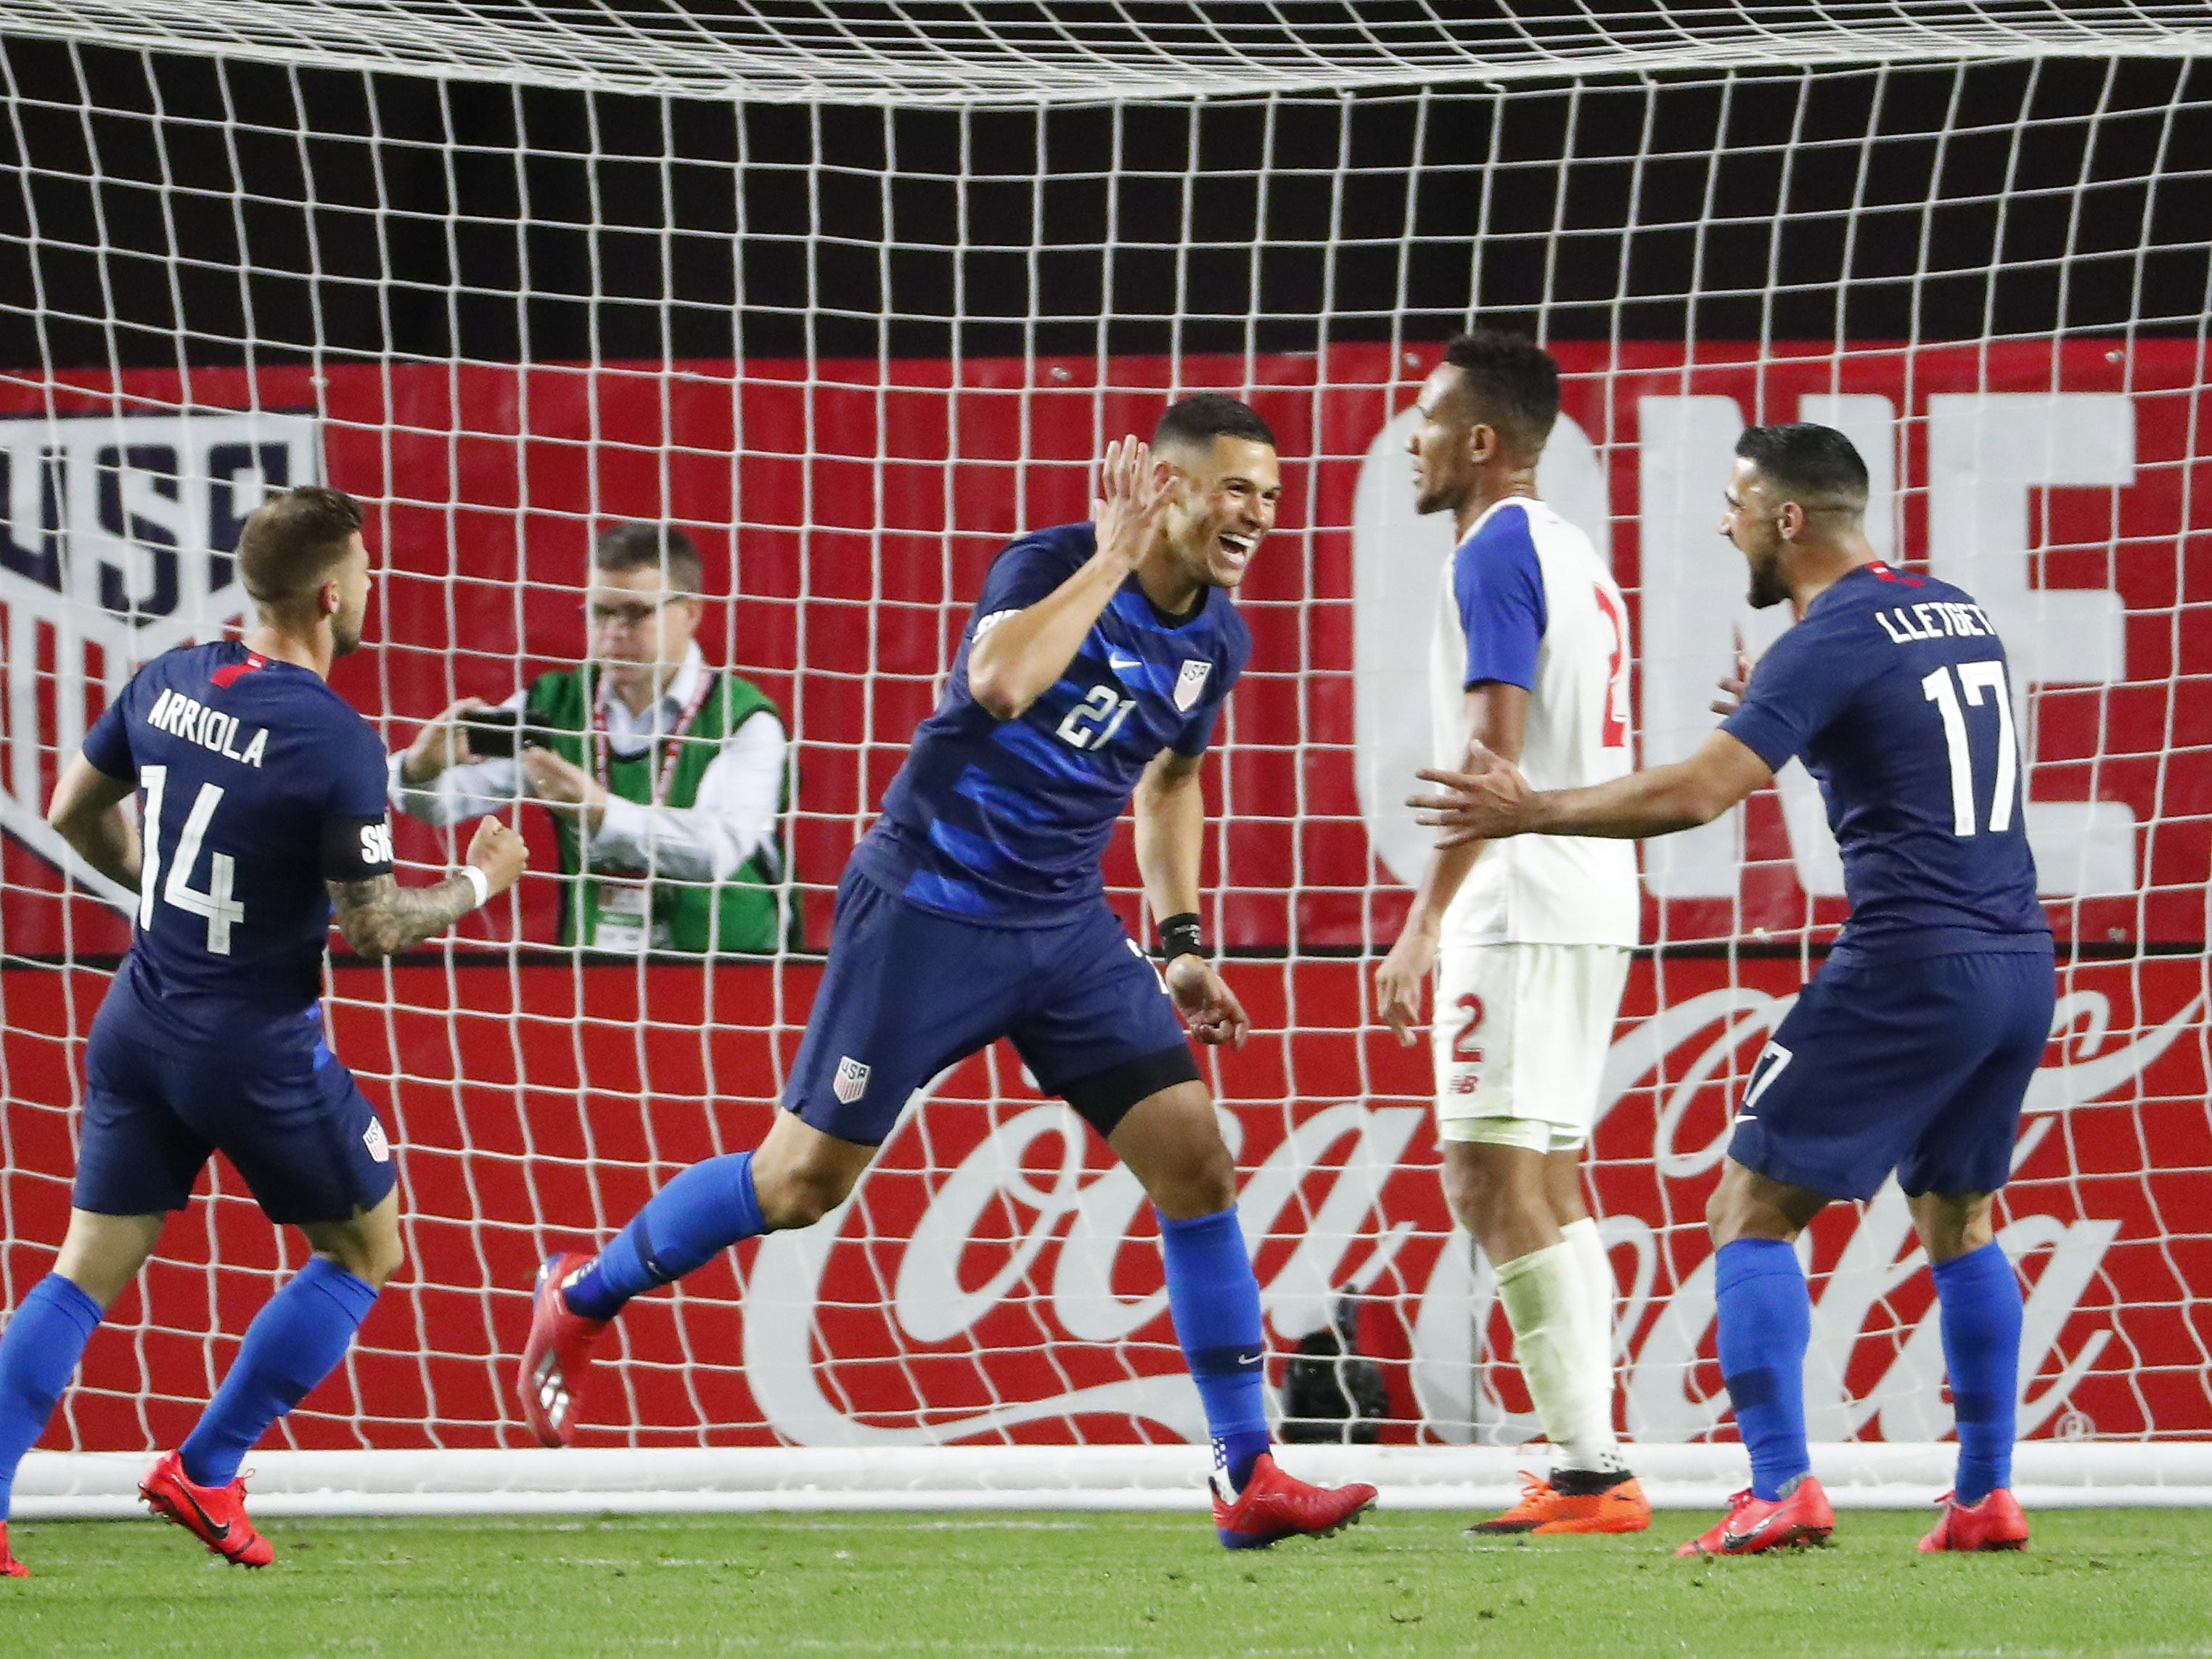 U.S. forward Christian Ramirez (21) celebrates after scoring against Panama during the second half of a friendly on Jan. 27, 2019 in Glendale, Ariz. The U.S. won 3-0.